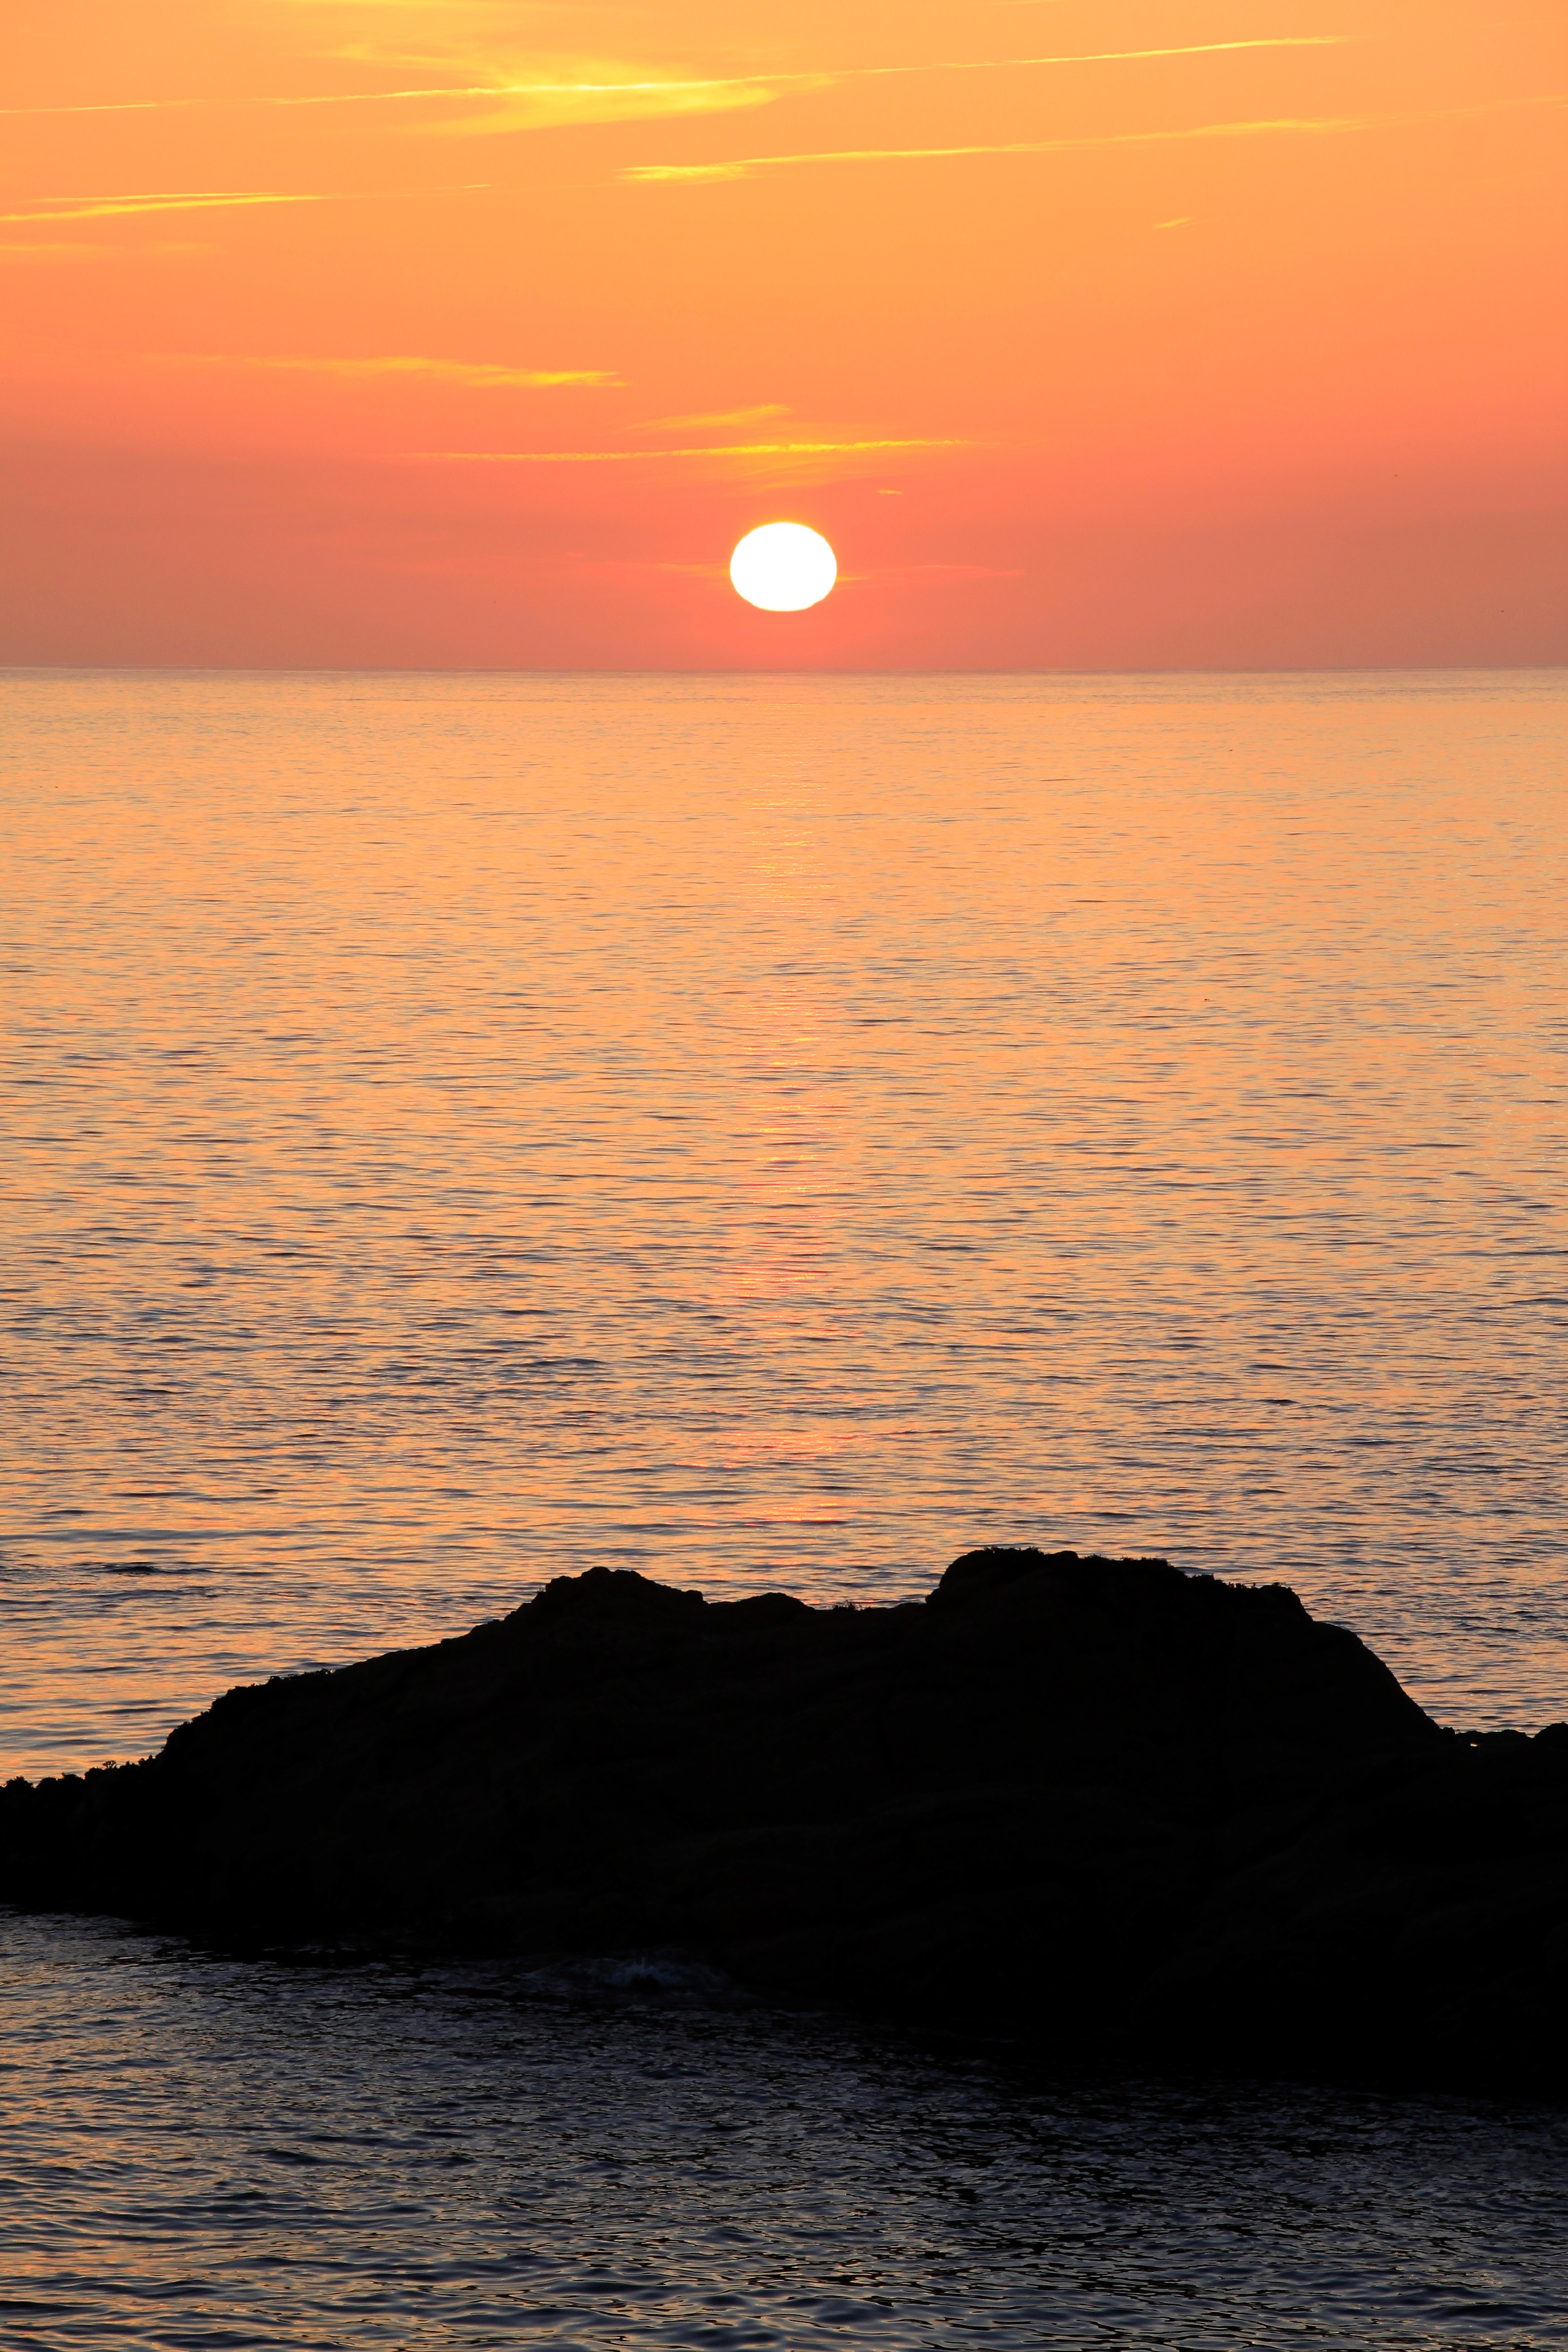 101287 download wallpaper Nature, Sunset, Lump, Horizon, Sun screensavers and pictures for free